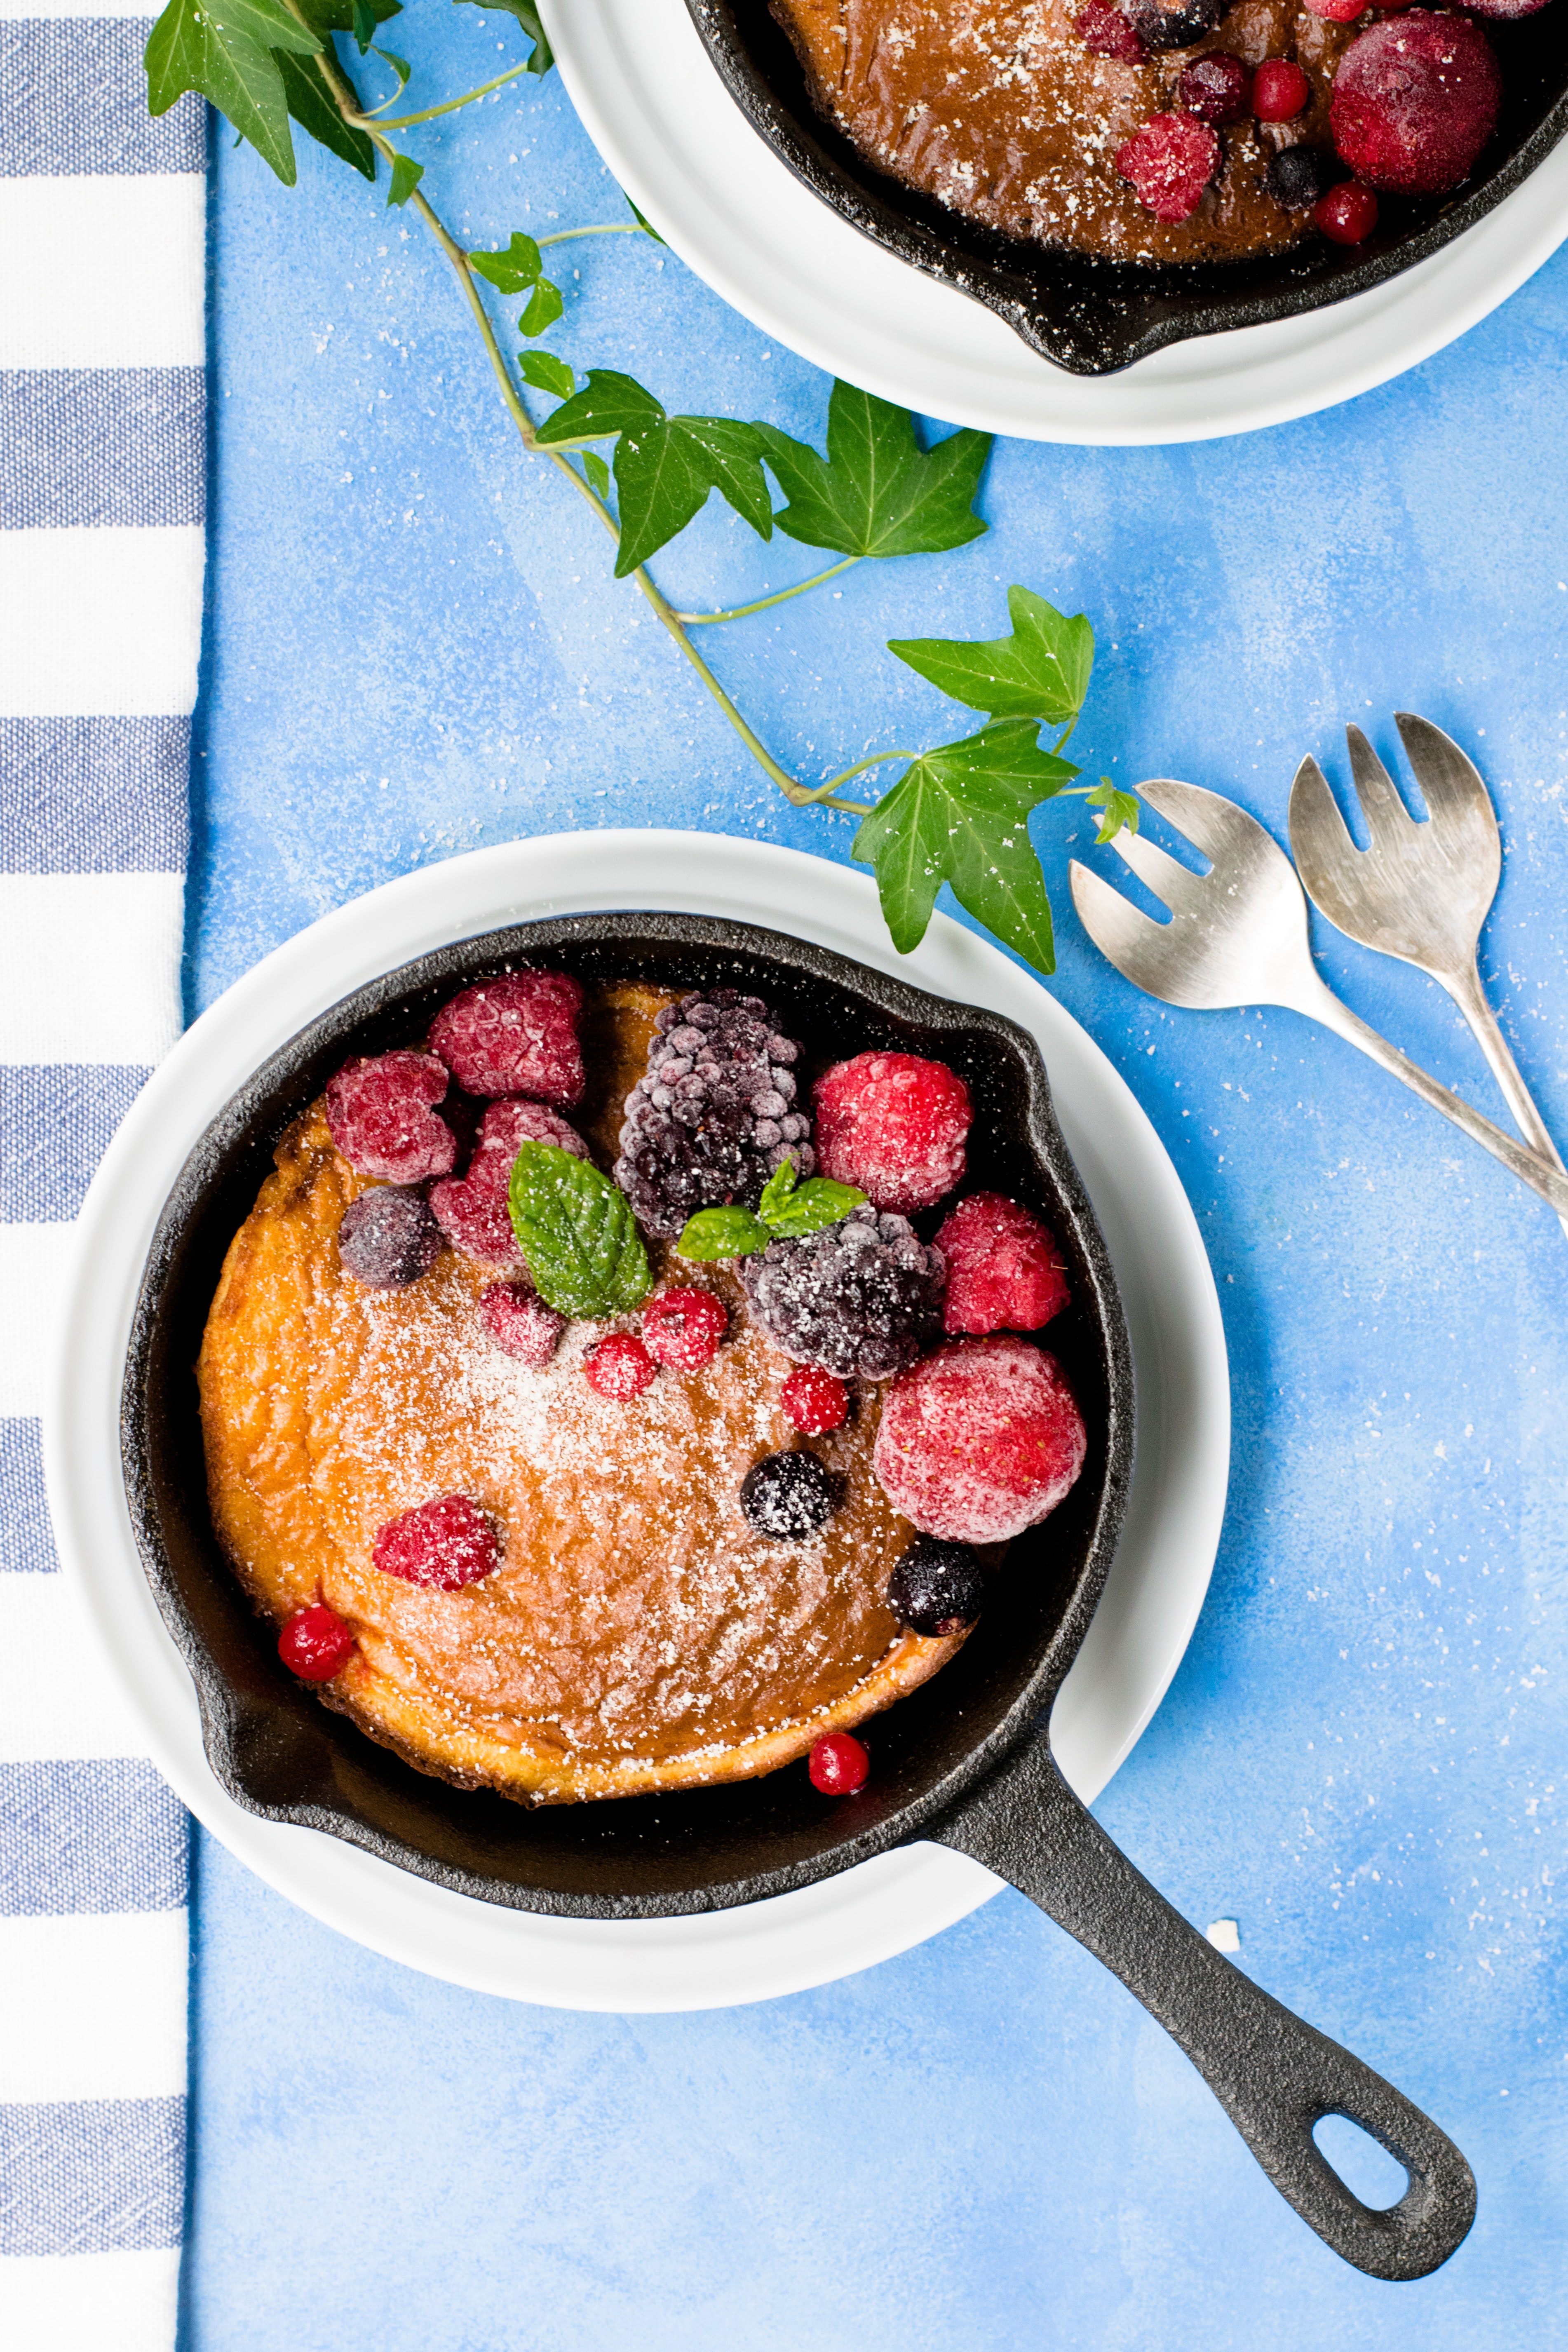 Pancakes in cast iron skillet with berries and blue cloth